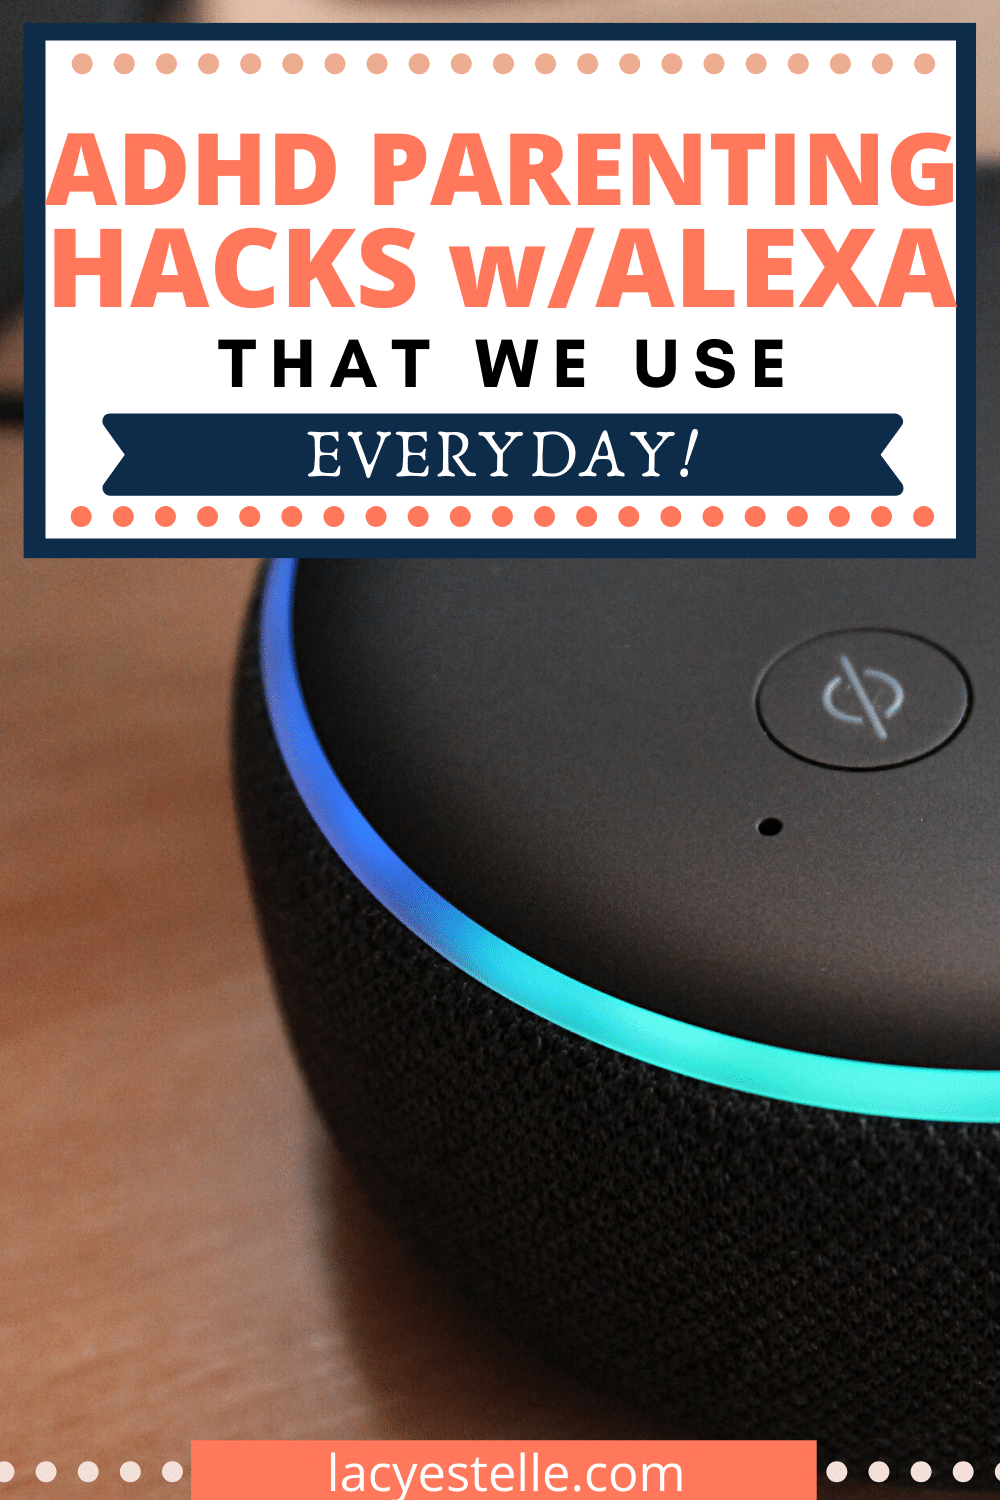 Technology for the ADHD brain, a personal assistant for ADHD people. How we use Alexa in our ADHD parenting everyday lives and why she is so helpful for us.